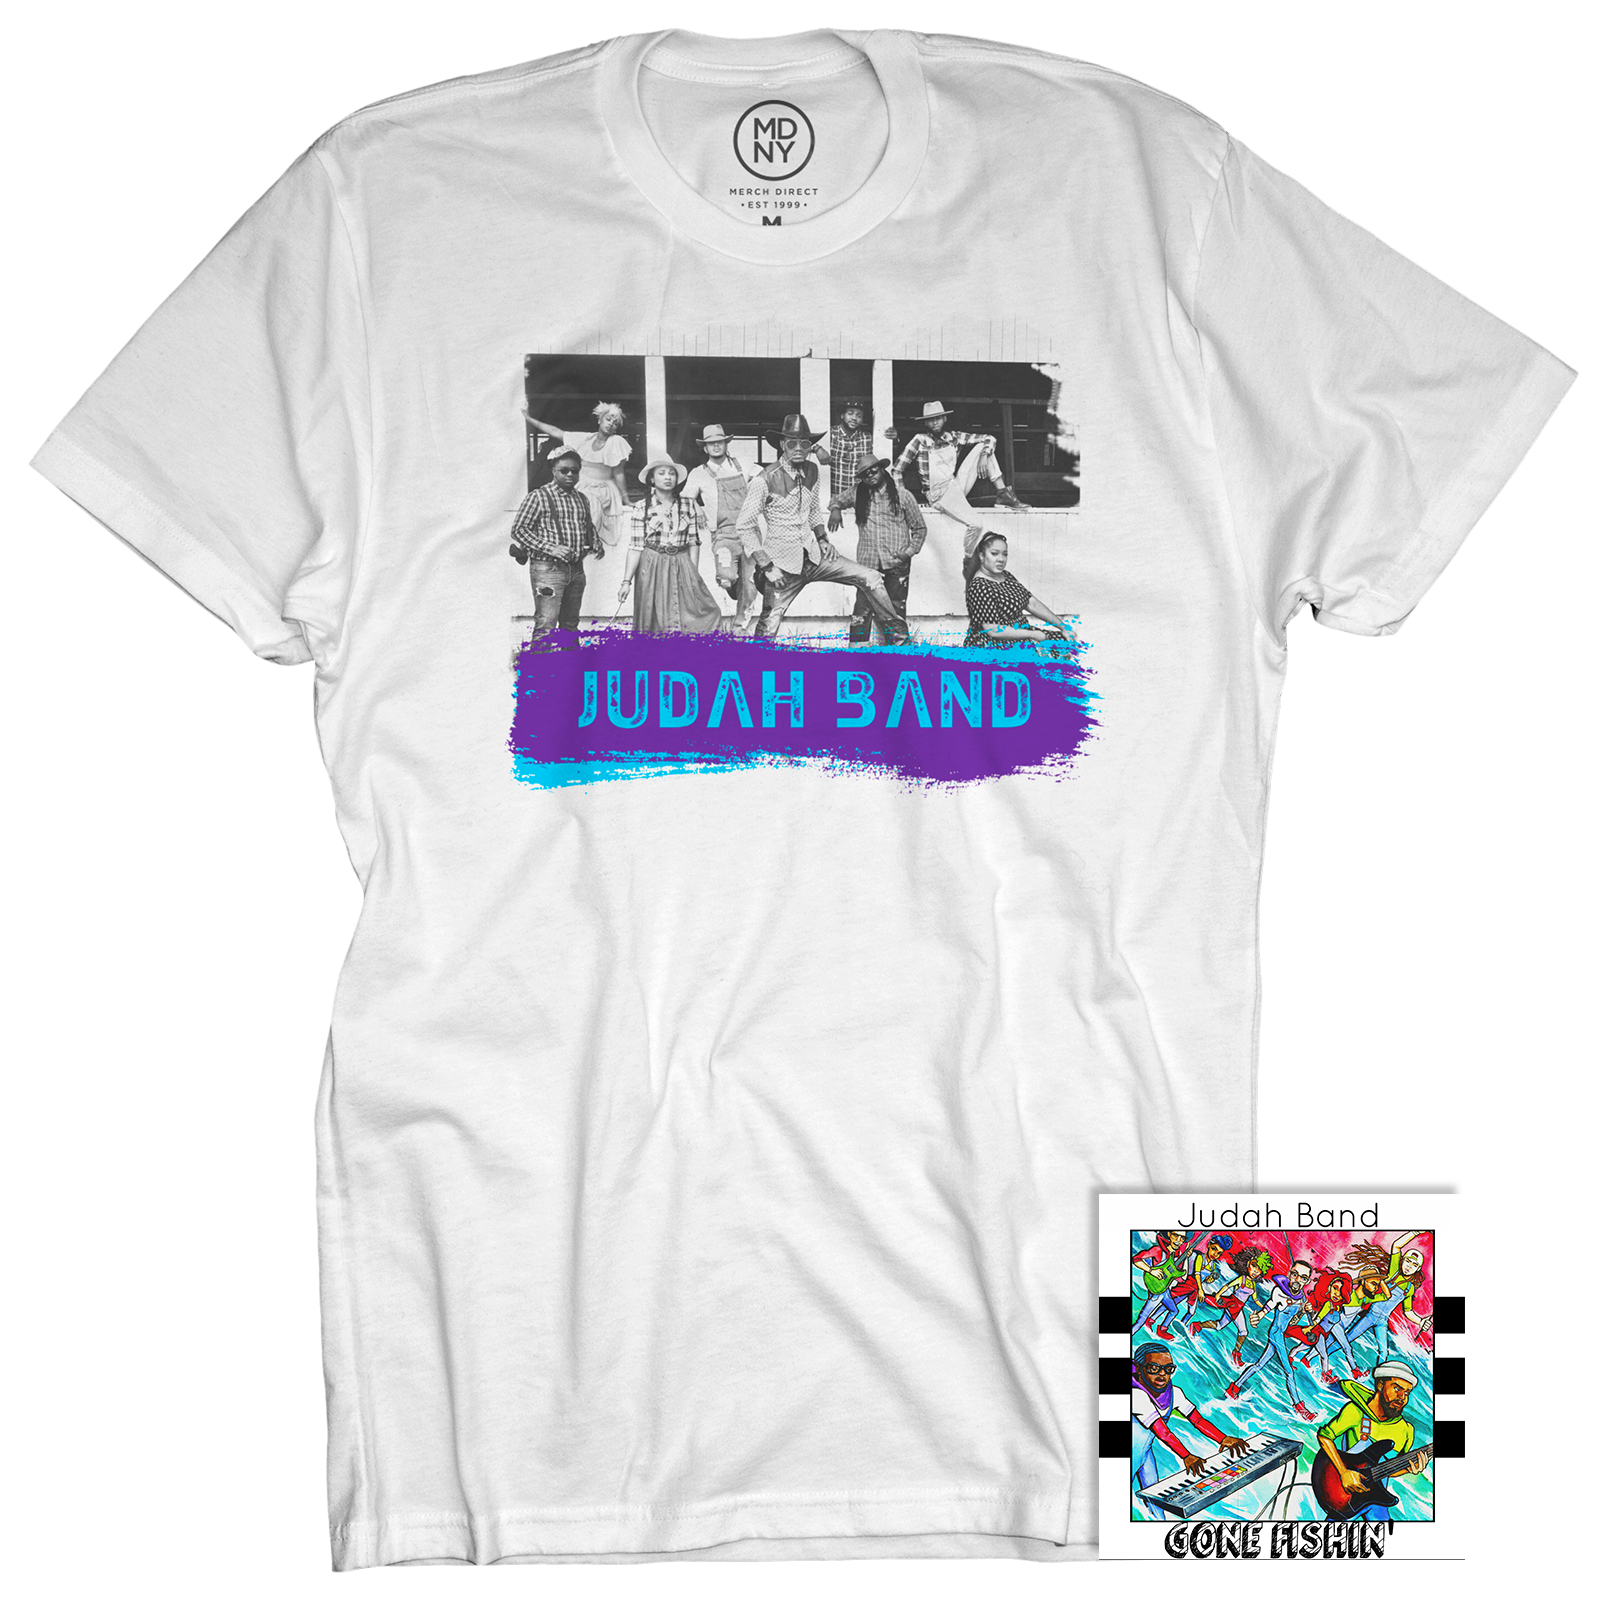 Judah Band White T-Shirt + Gone Fishin' CD